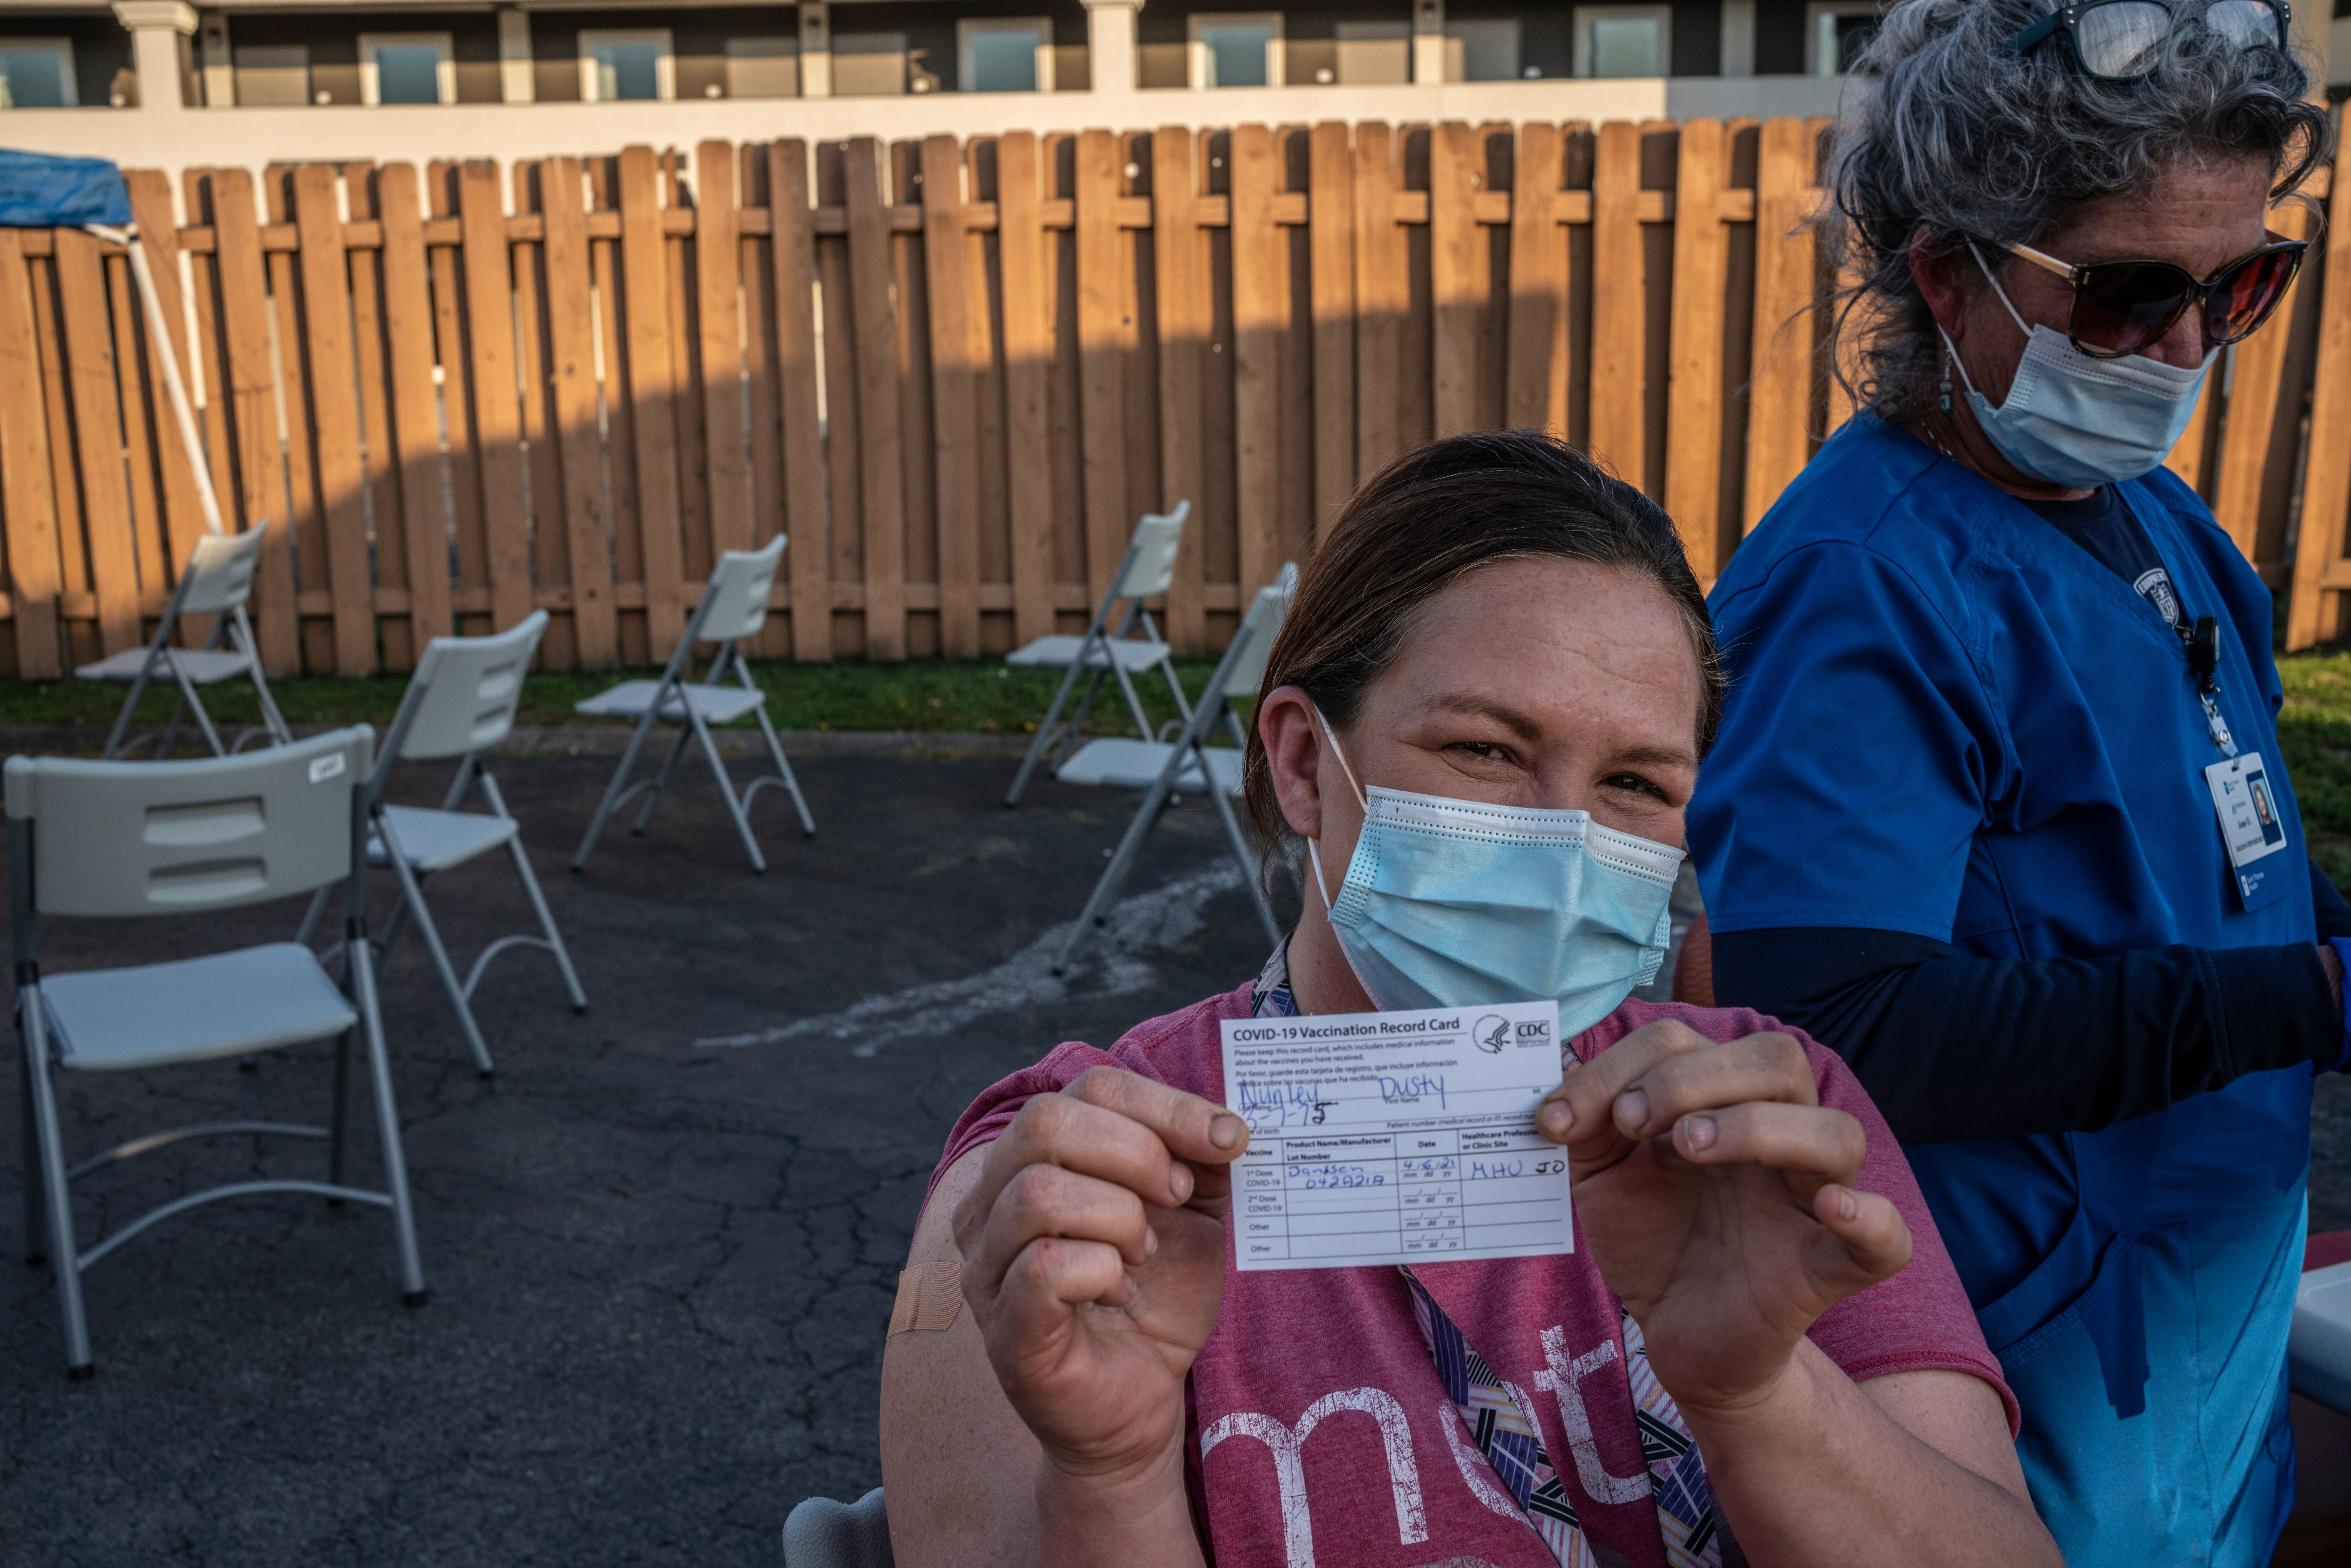 Dusty Nunley was the first person to get vaccinated at the Rodeway Inn during an April mobile clinic for Nashville's homeless and shows off her vaccination card. (Photo: John Partipilo)